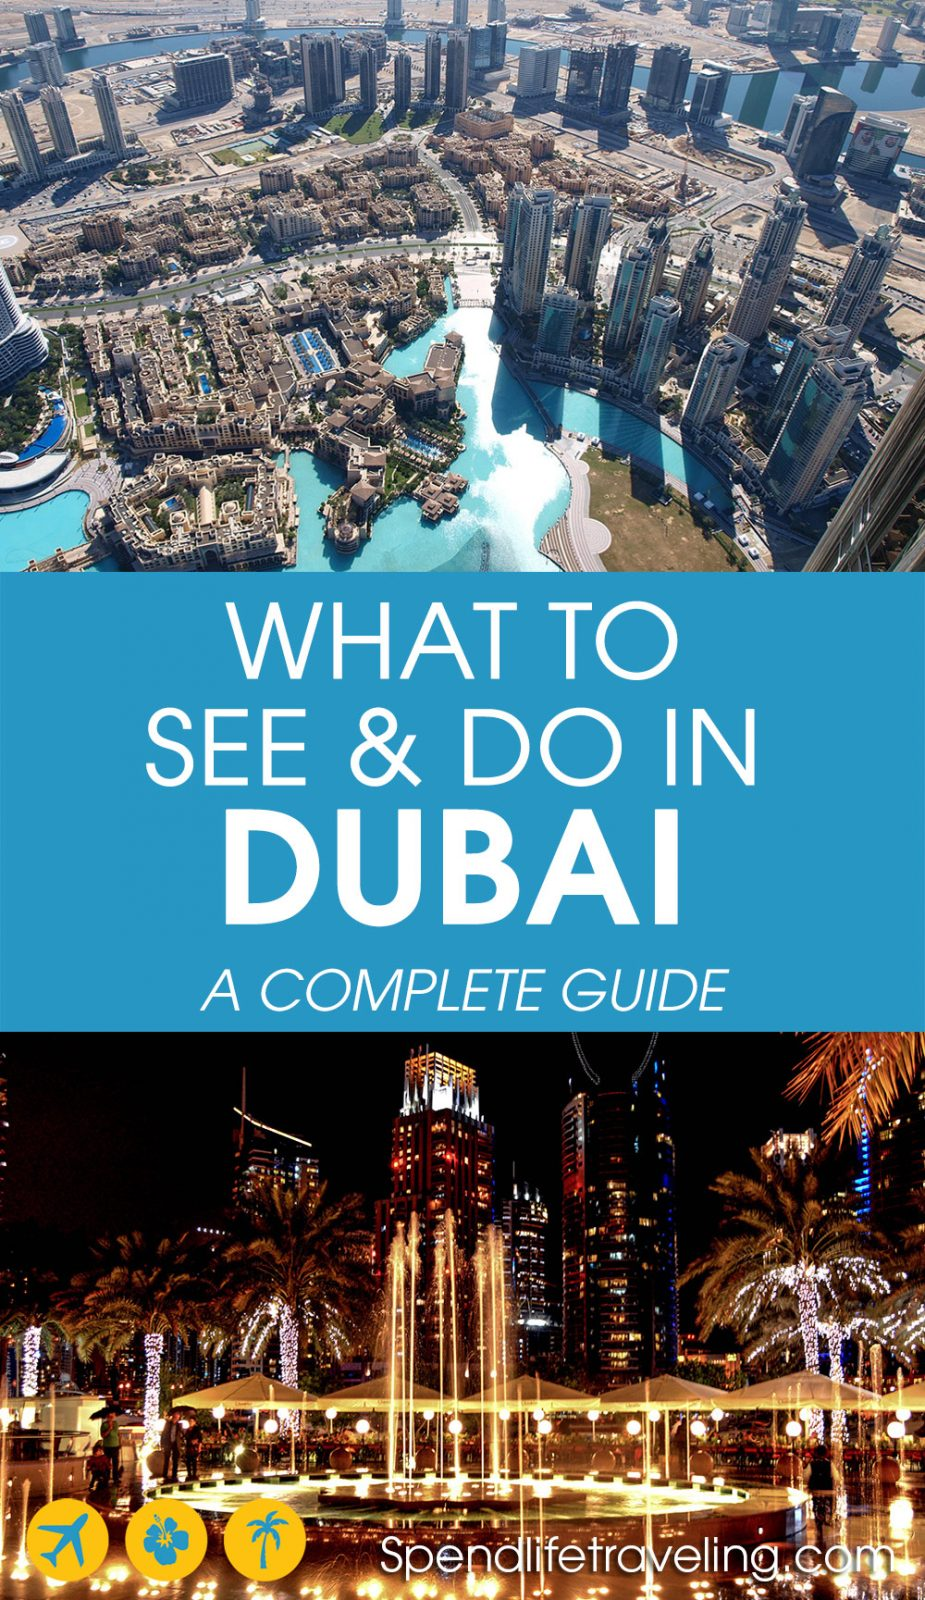 Dubai is a unique destination. This complete travel guide shares what to see and do in this Emirate plus the best day trips from Dubai. Insider tips from an expat in Dubai.